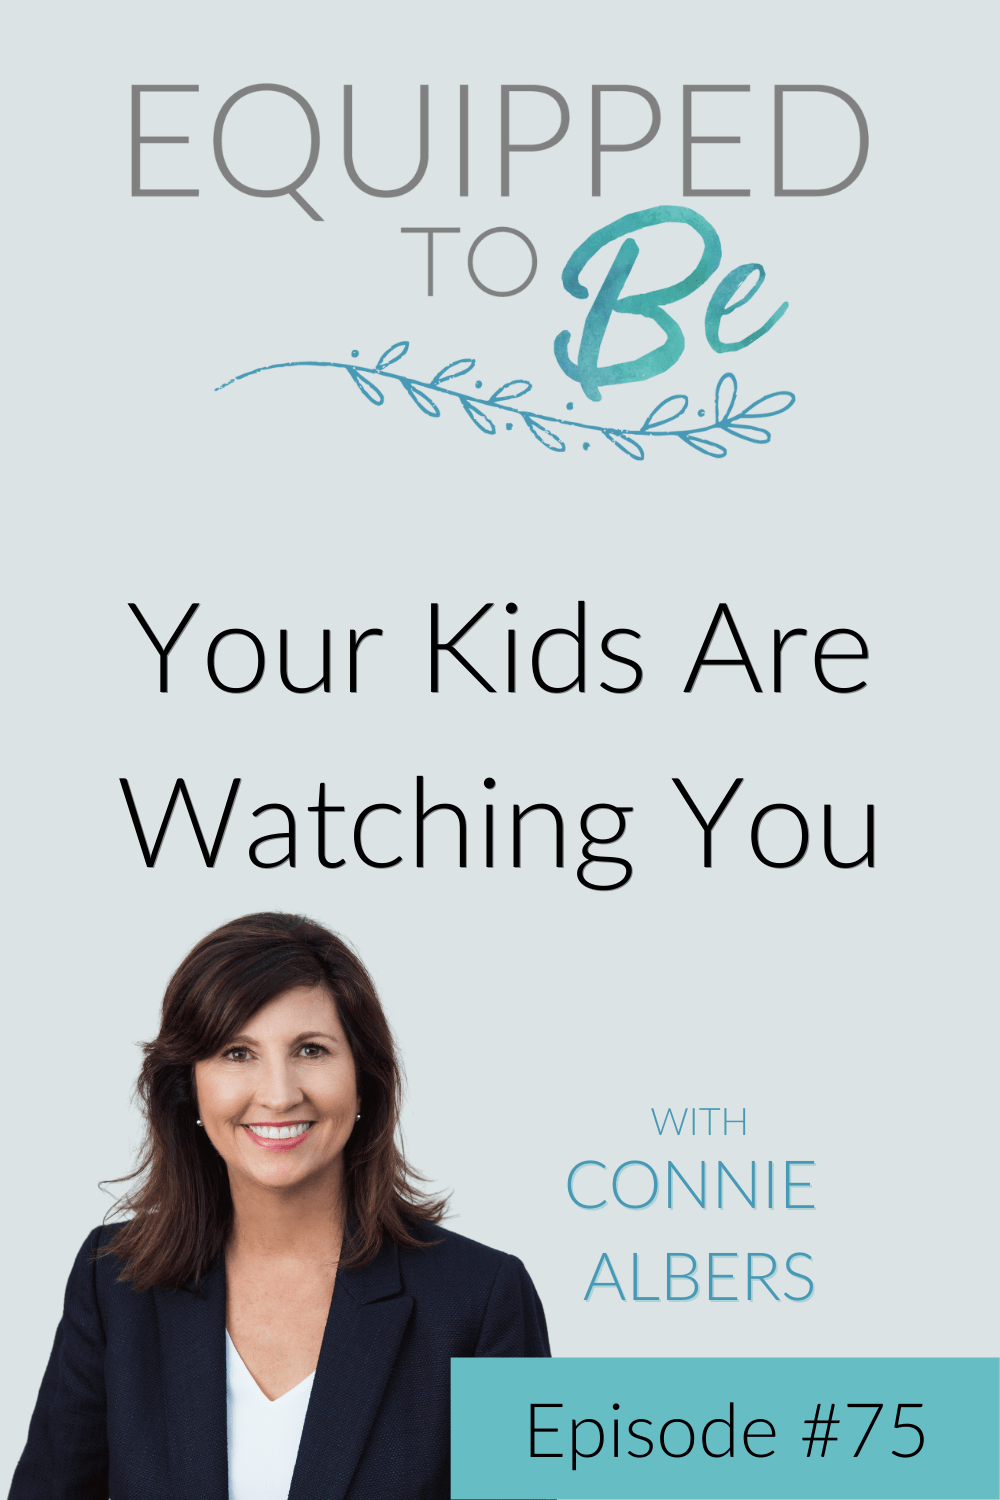 Your Kids Are Watching You - ETB #75